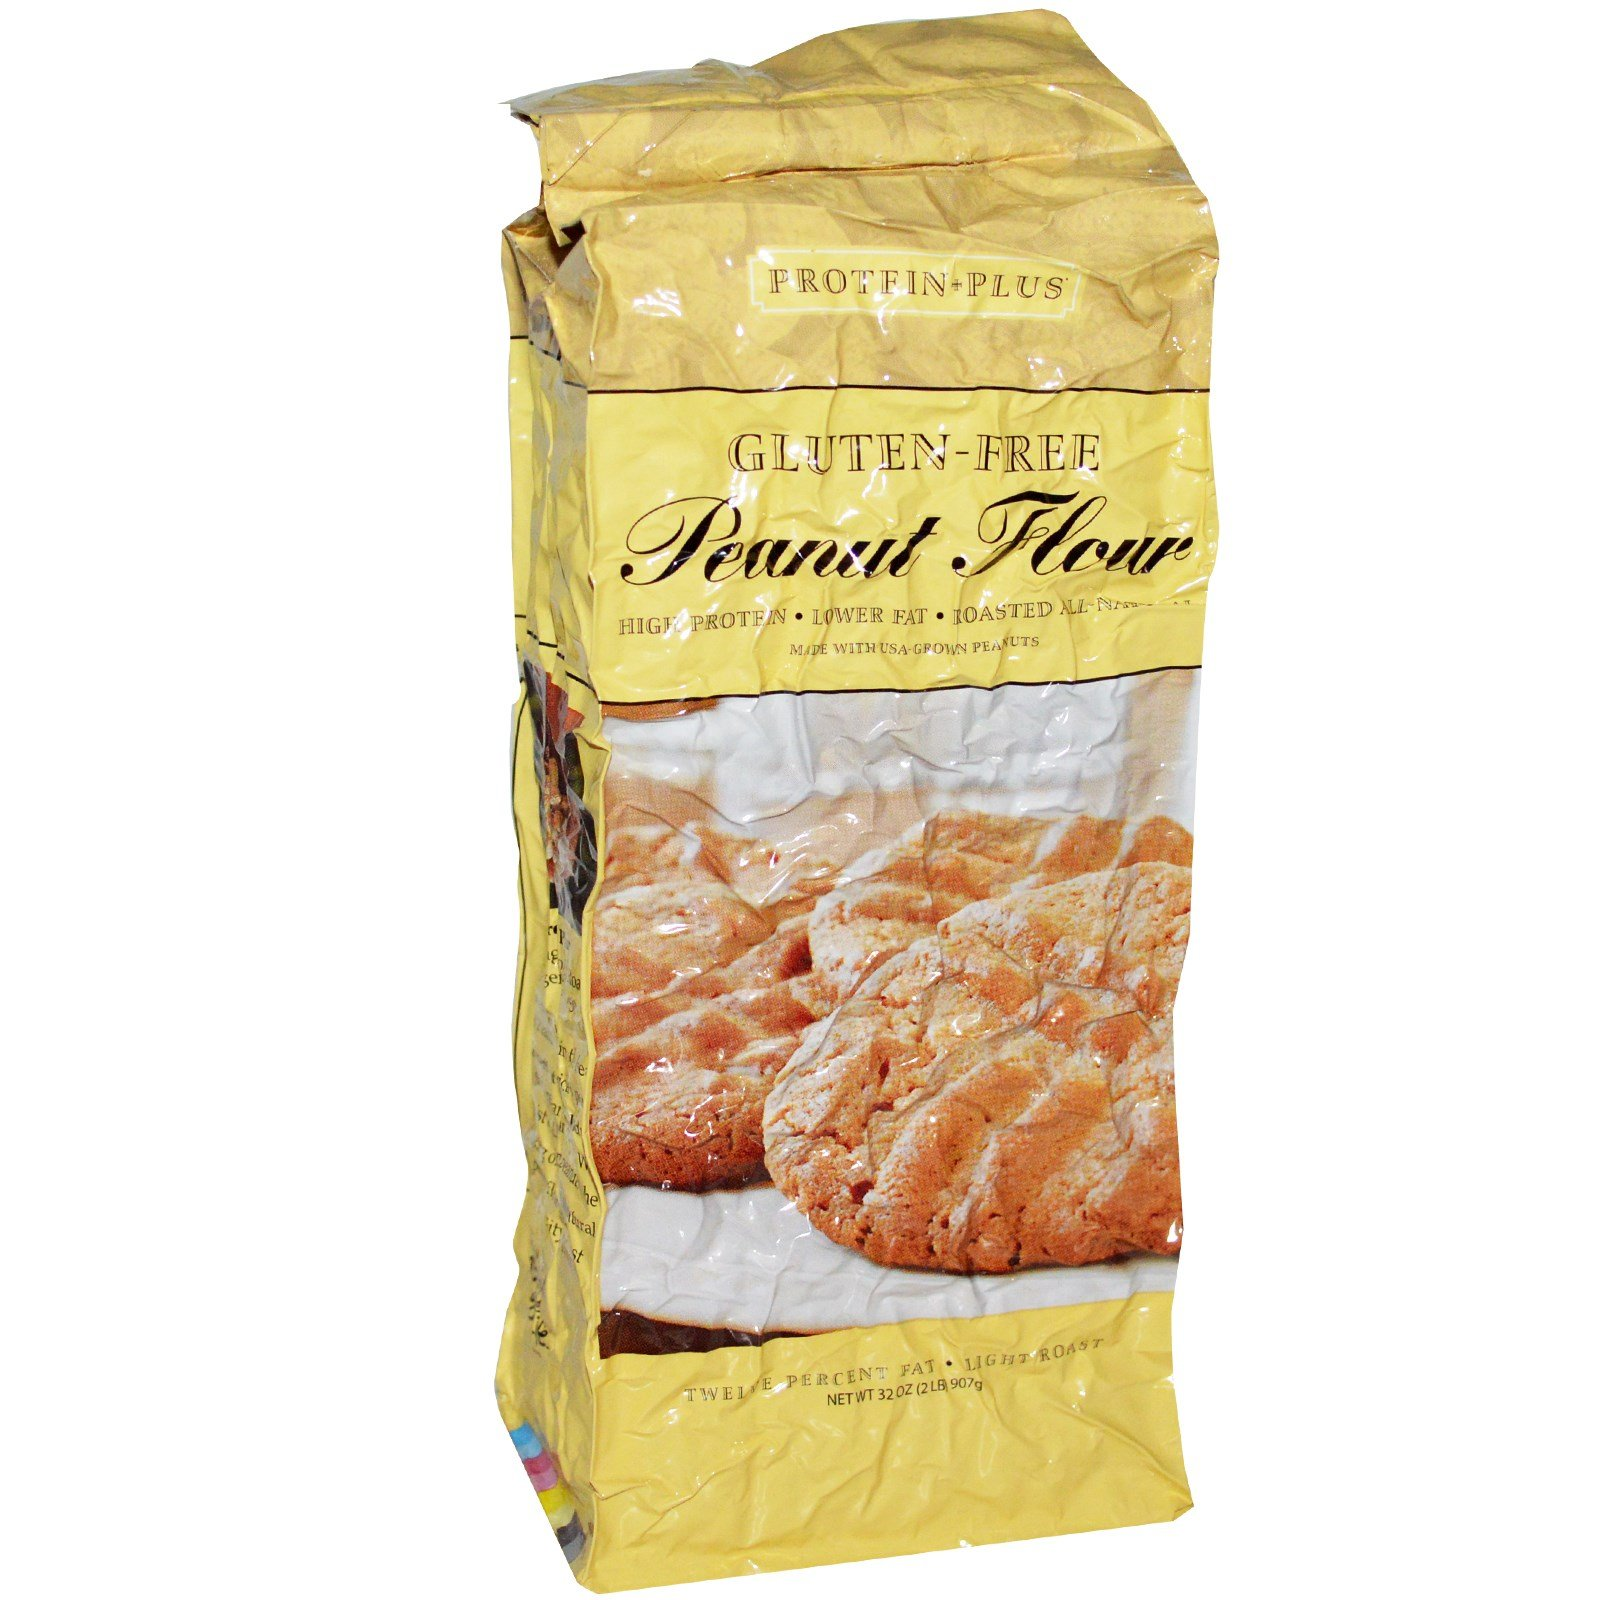 Protein Plus, Roasted All Natural Peanut Flour, 32 oz (907 g) - Pack of 3